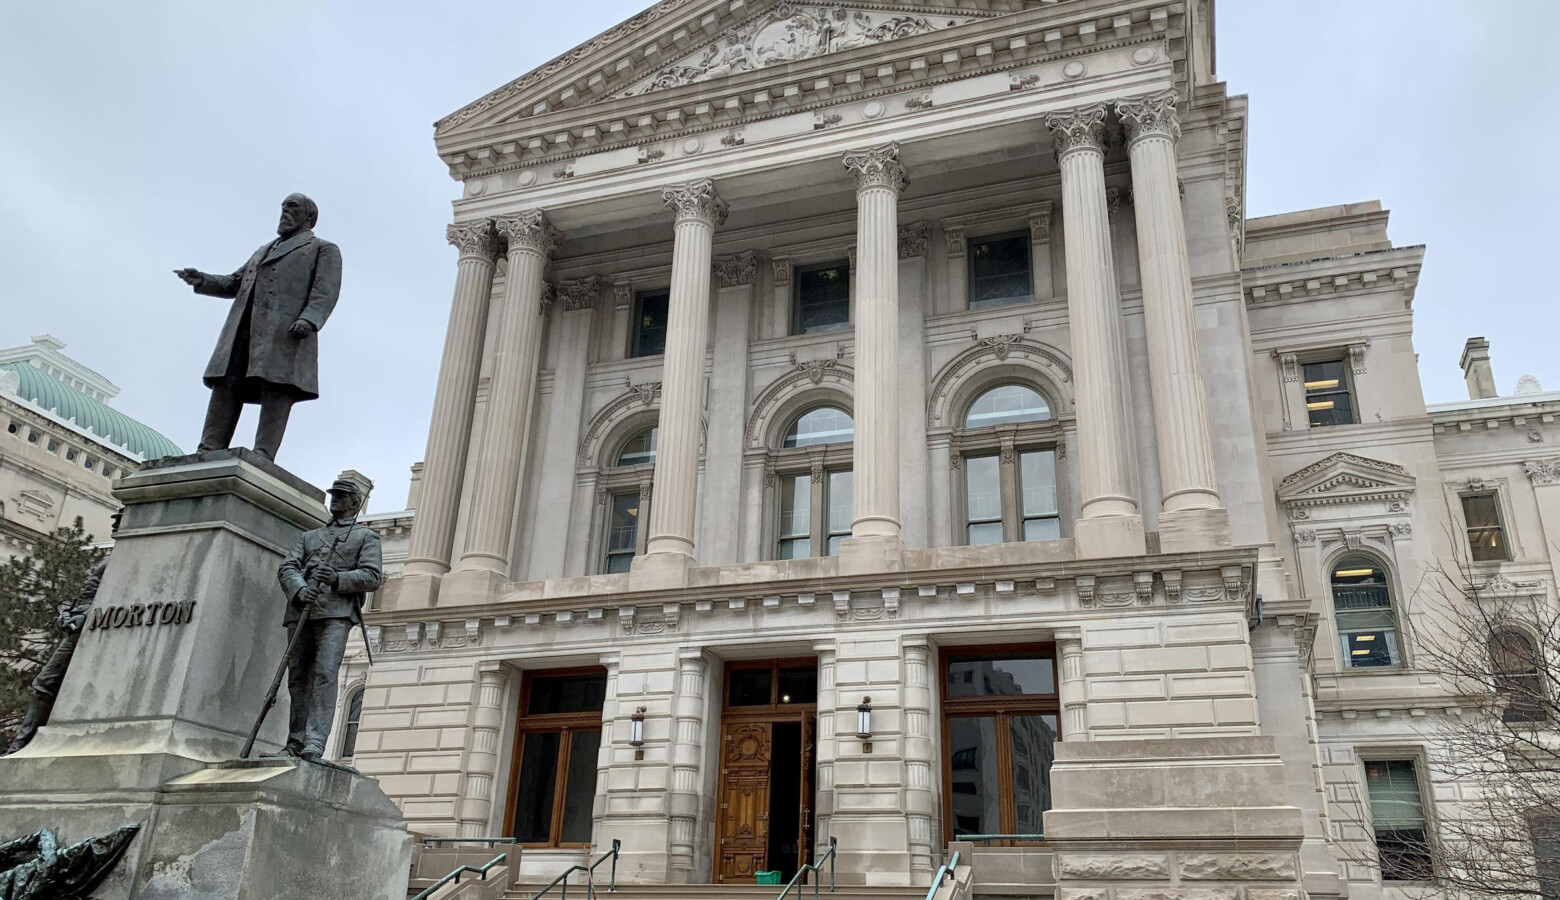 Legislation approved by the Indiana House would require doctors tell patients medication-induced abortions can be reversed – a claim called unproven and dangerous by leading medical organizations. (Brandon Smith/IPB News)